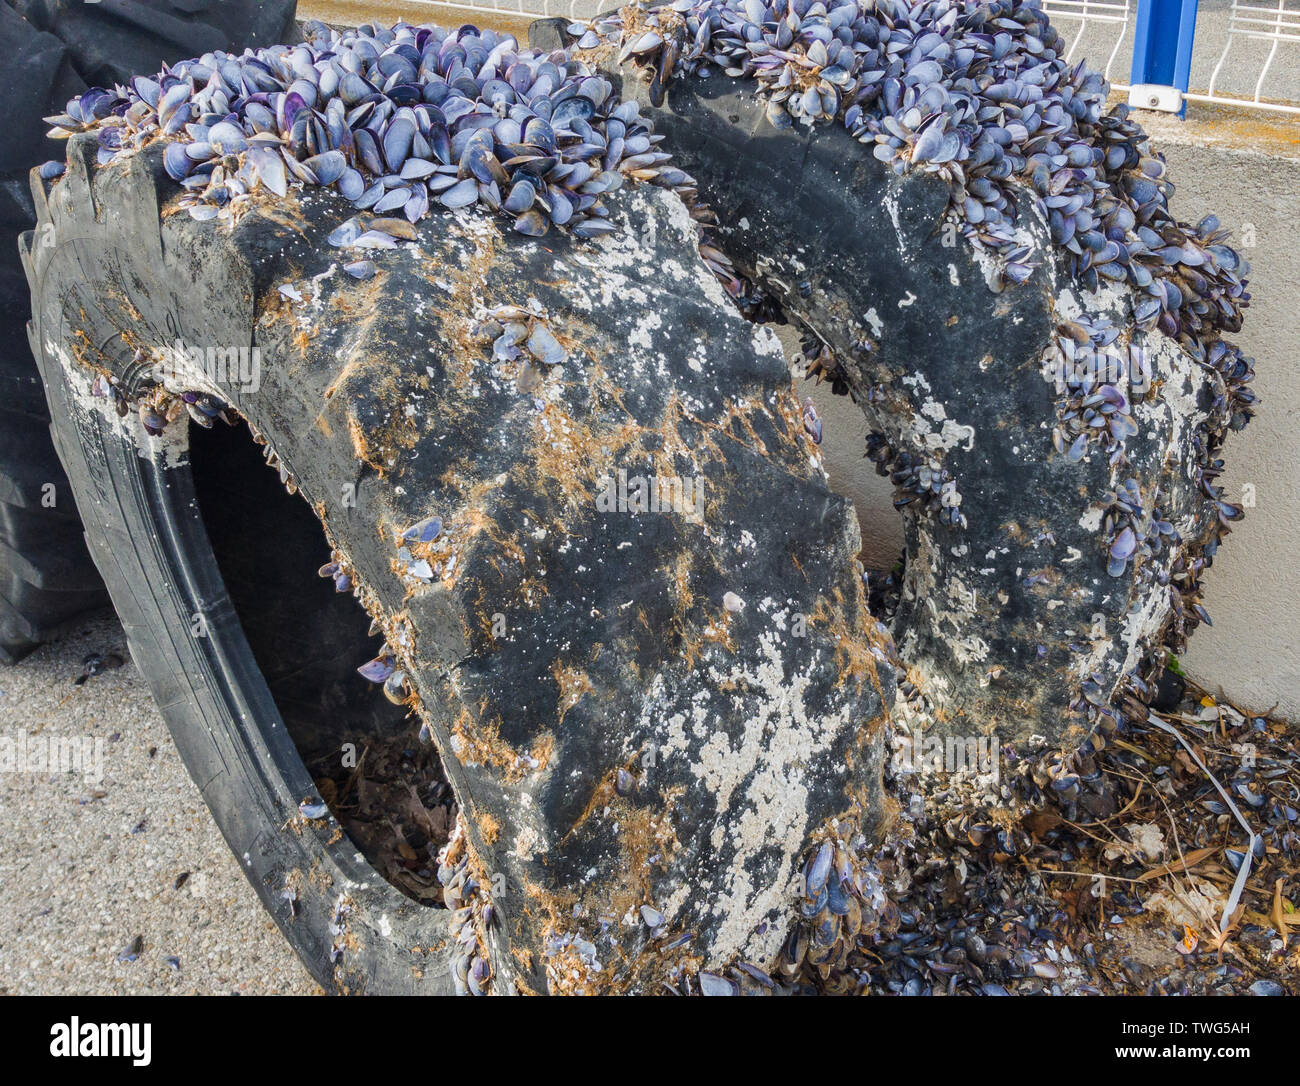 The colony of mollusks settled on big tires. Selective focus. - Stock Image